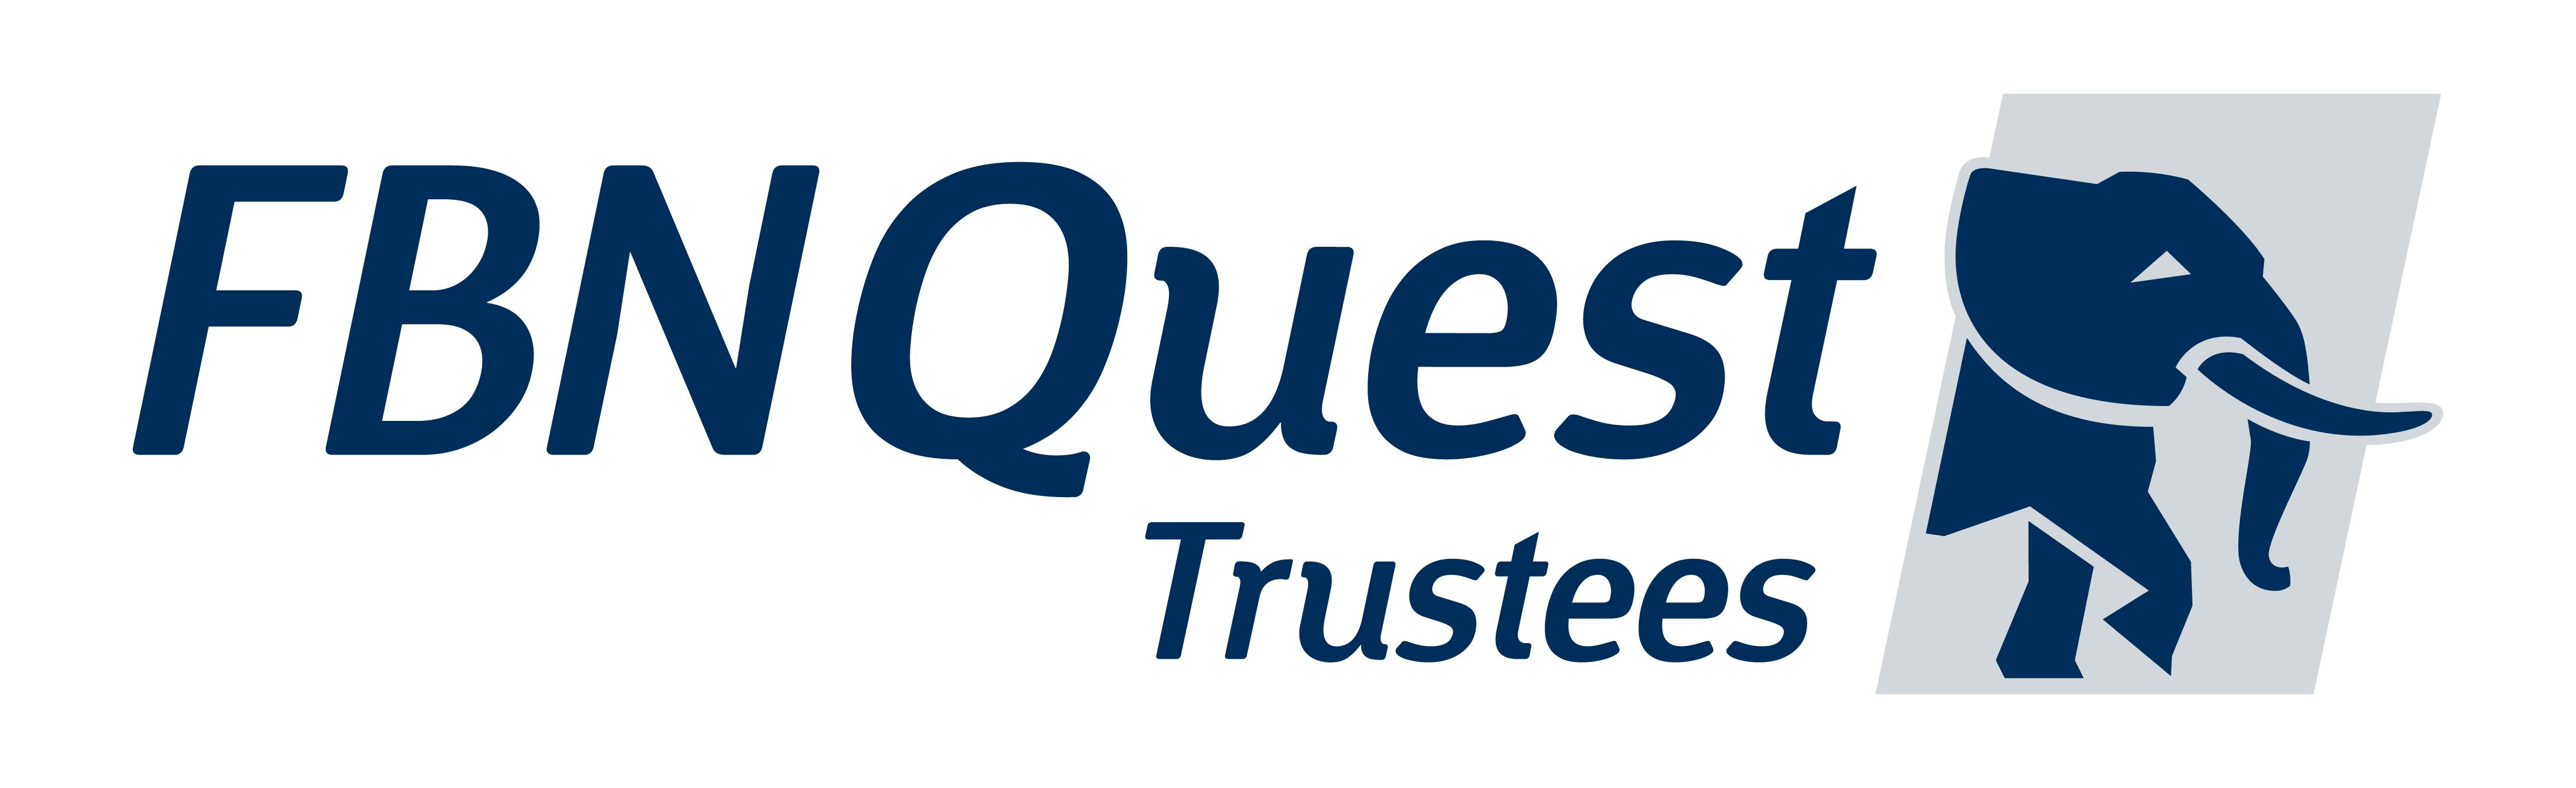 FBNQuest-Trustees-logo-01-PNG